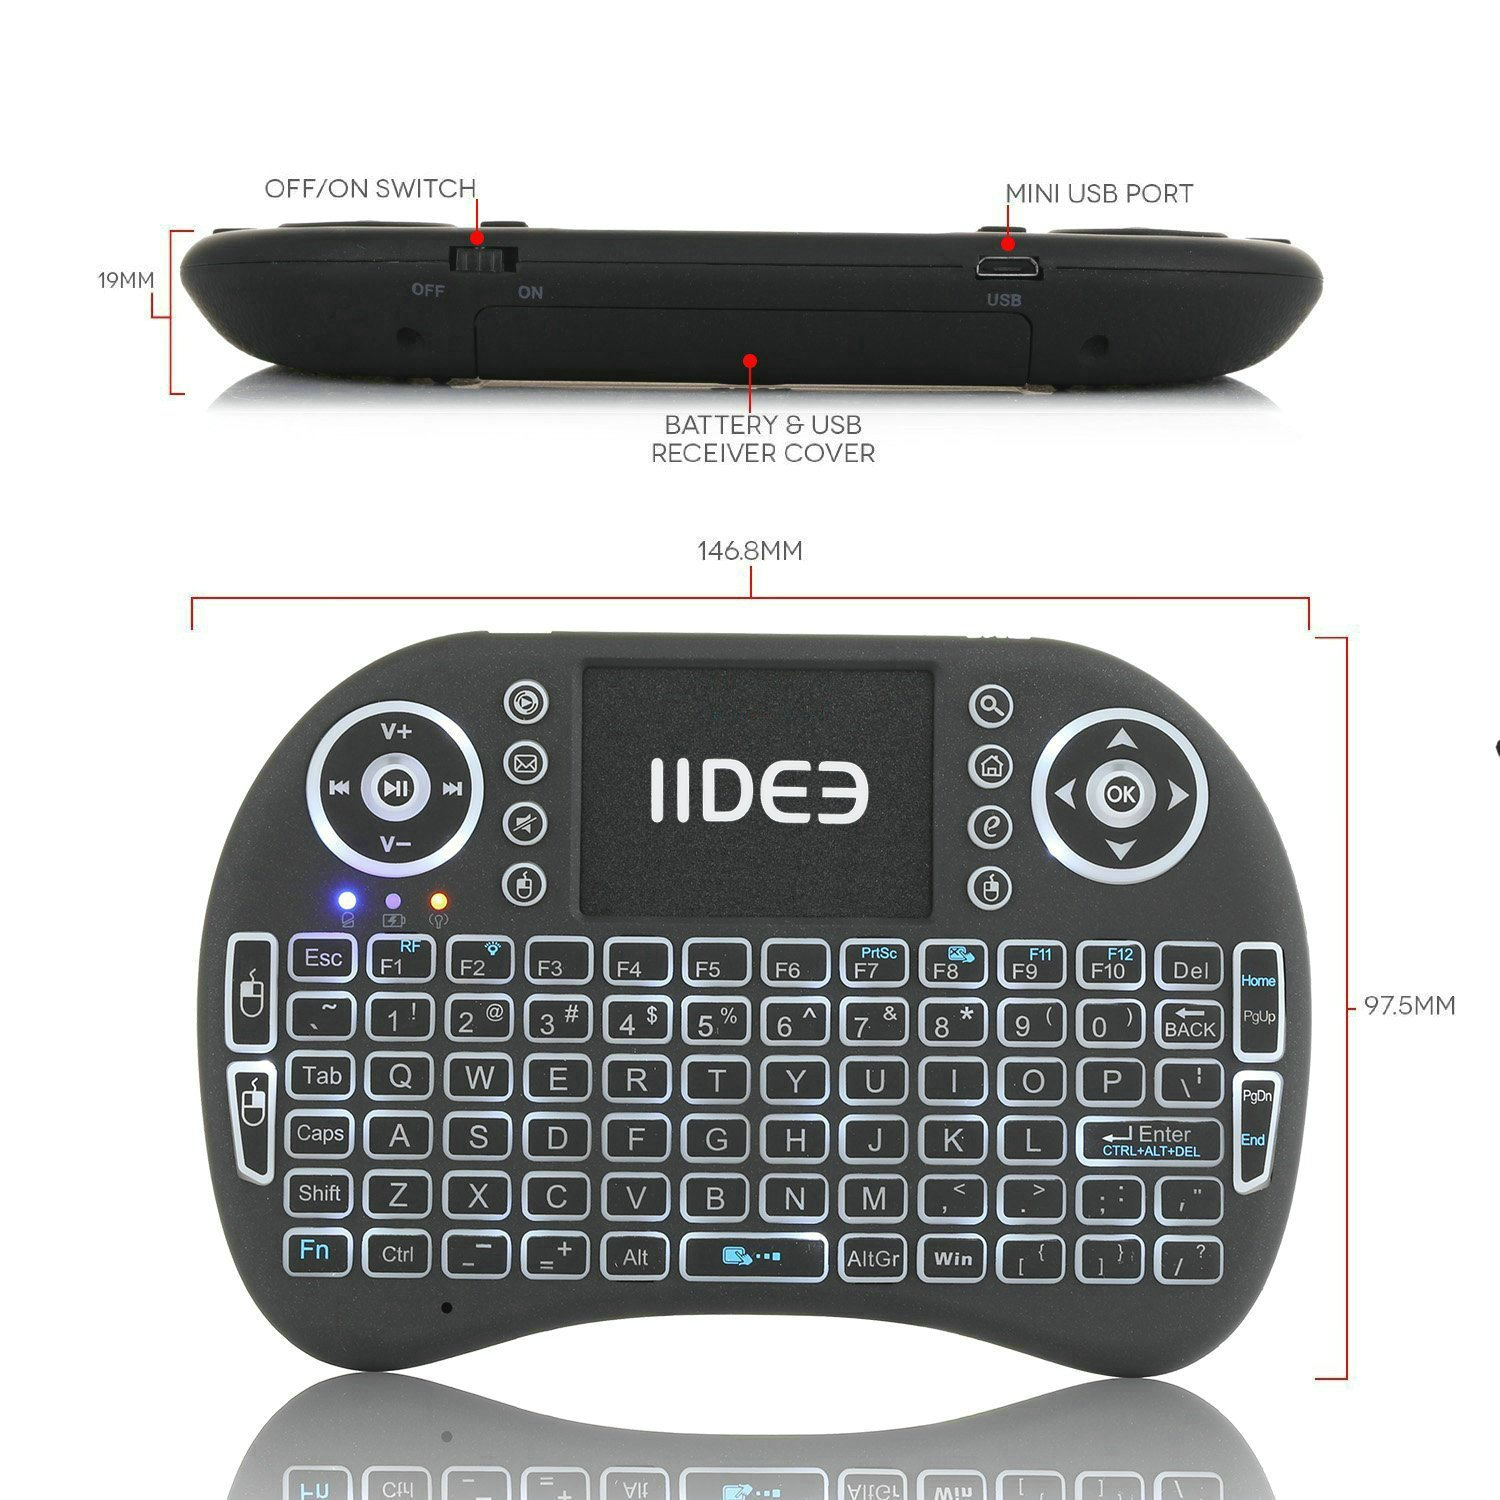 Rii i8 (10038-ID) Mini 2.4GHz Wireless Touchpad Keyboard with Mouse, Black by Rii (Image #3)